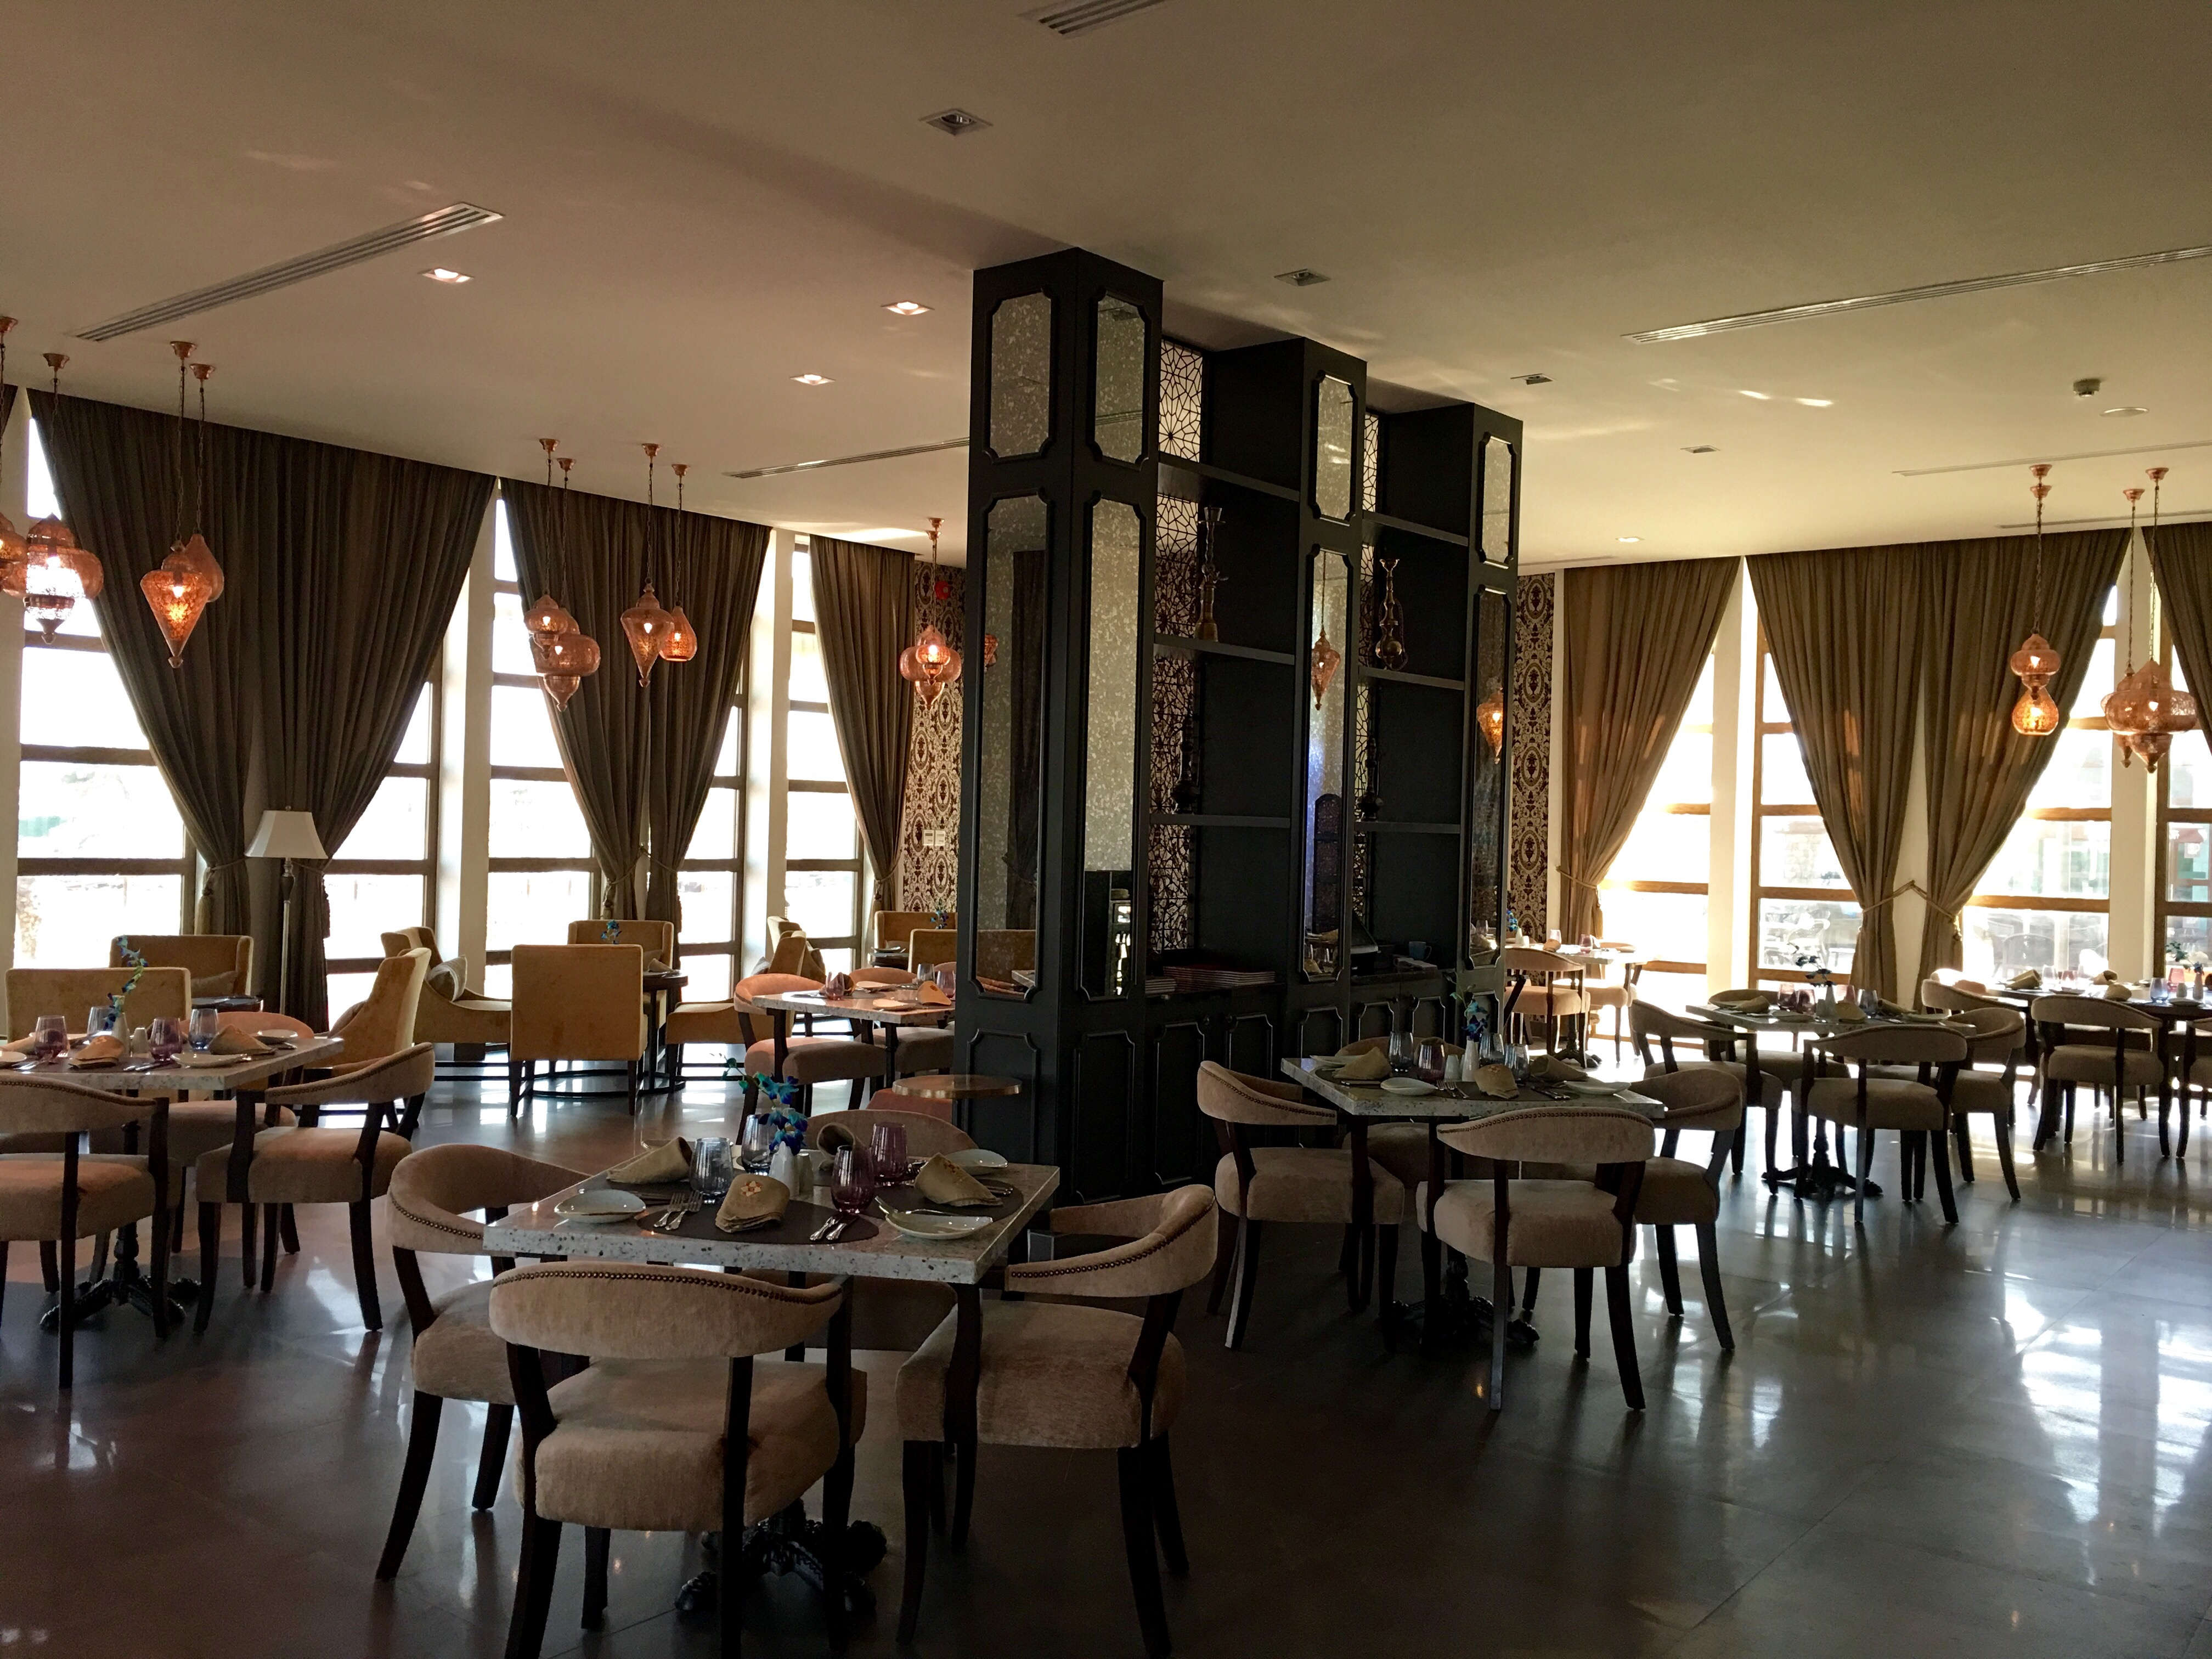 The Interiors Of Yansoon Is Classy And Regal Decor Done Up Tastefully From Gorgeous Chandeliers Upholstery To Beautiful Furniture Tableware